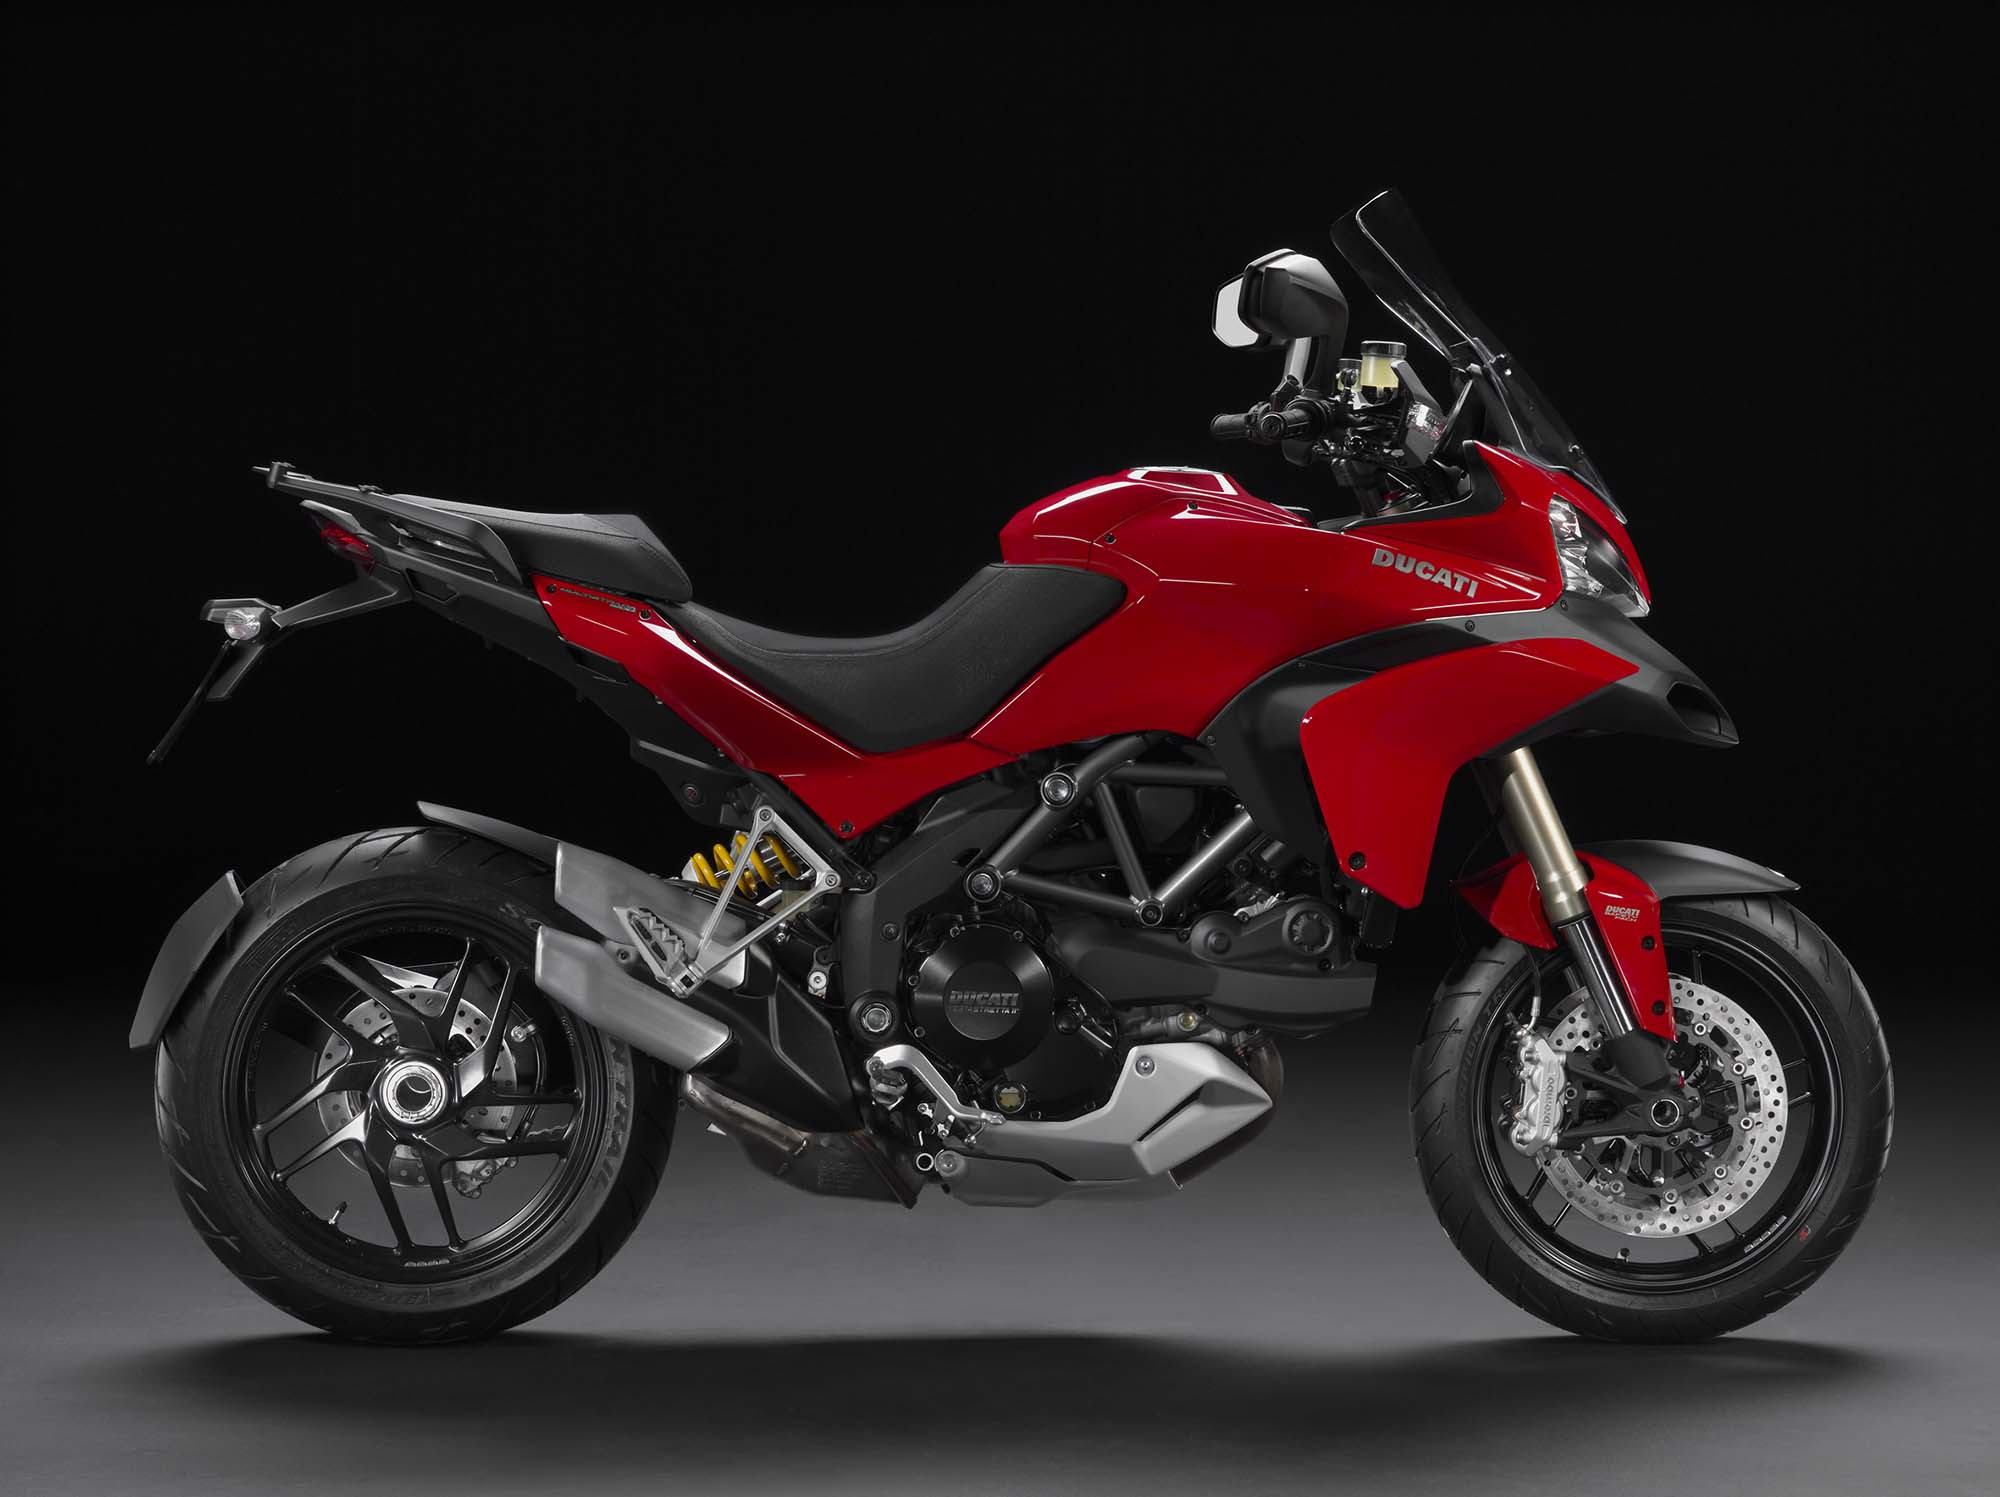 69 photos of the 2013 ducati multistrada 1200. Black Bedroom Furniture Sets. Home Design Ideas